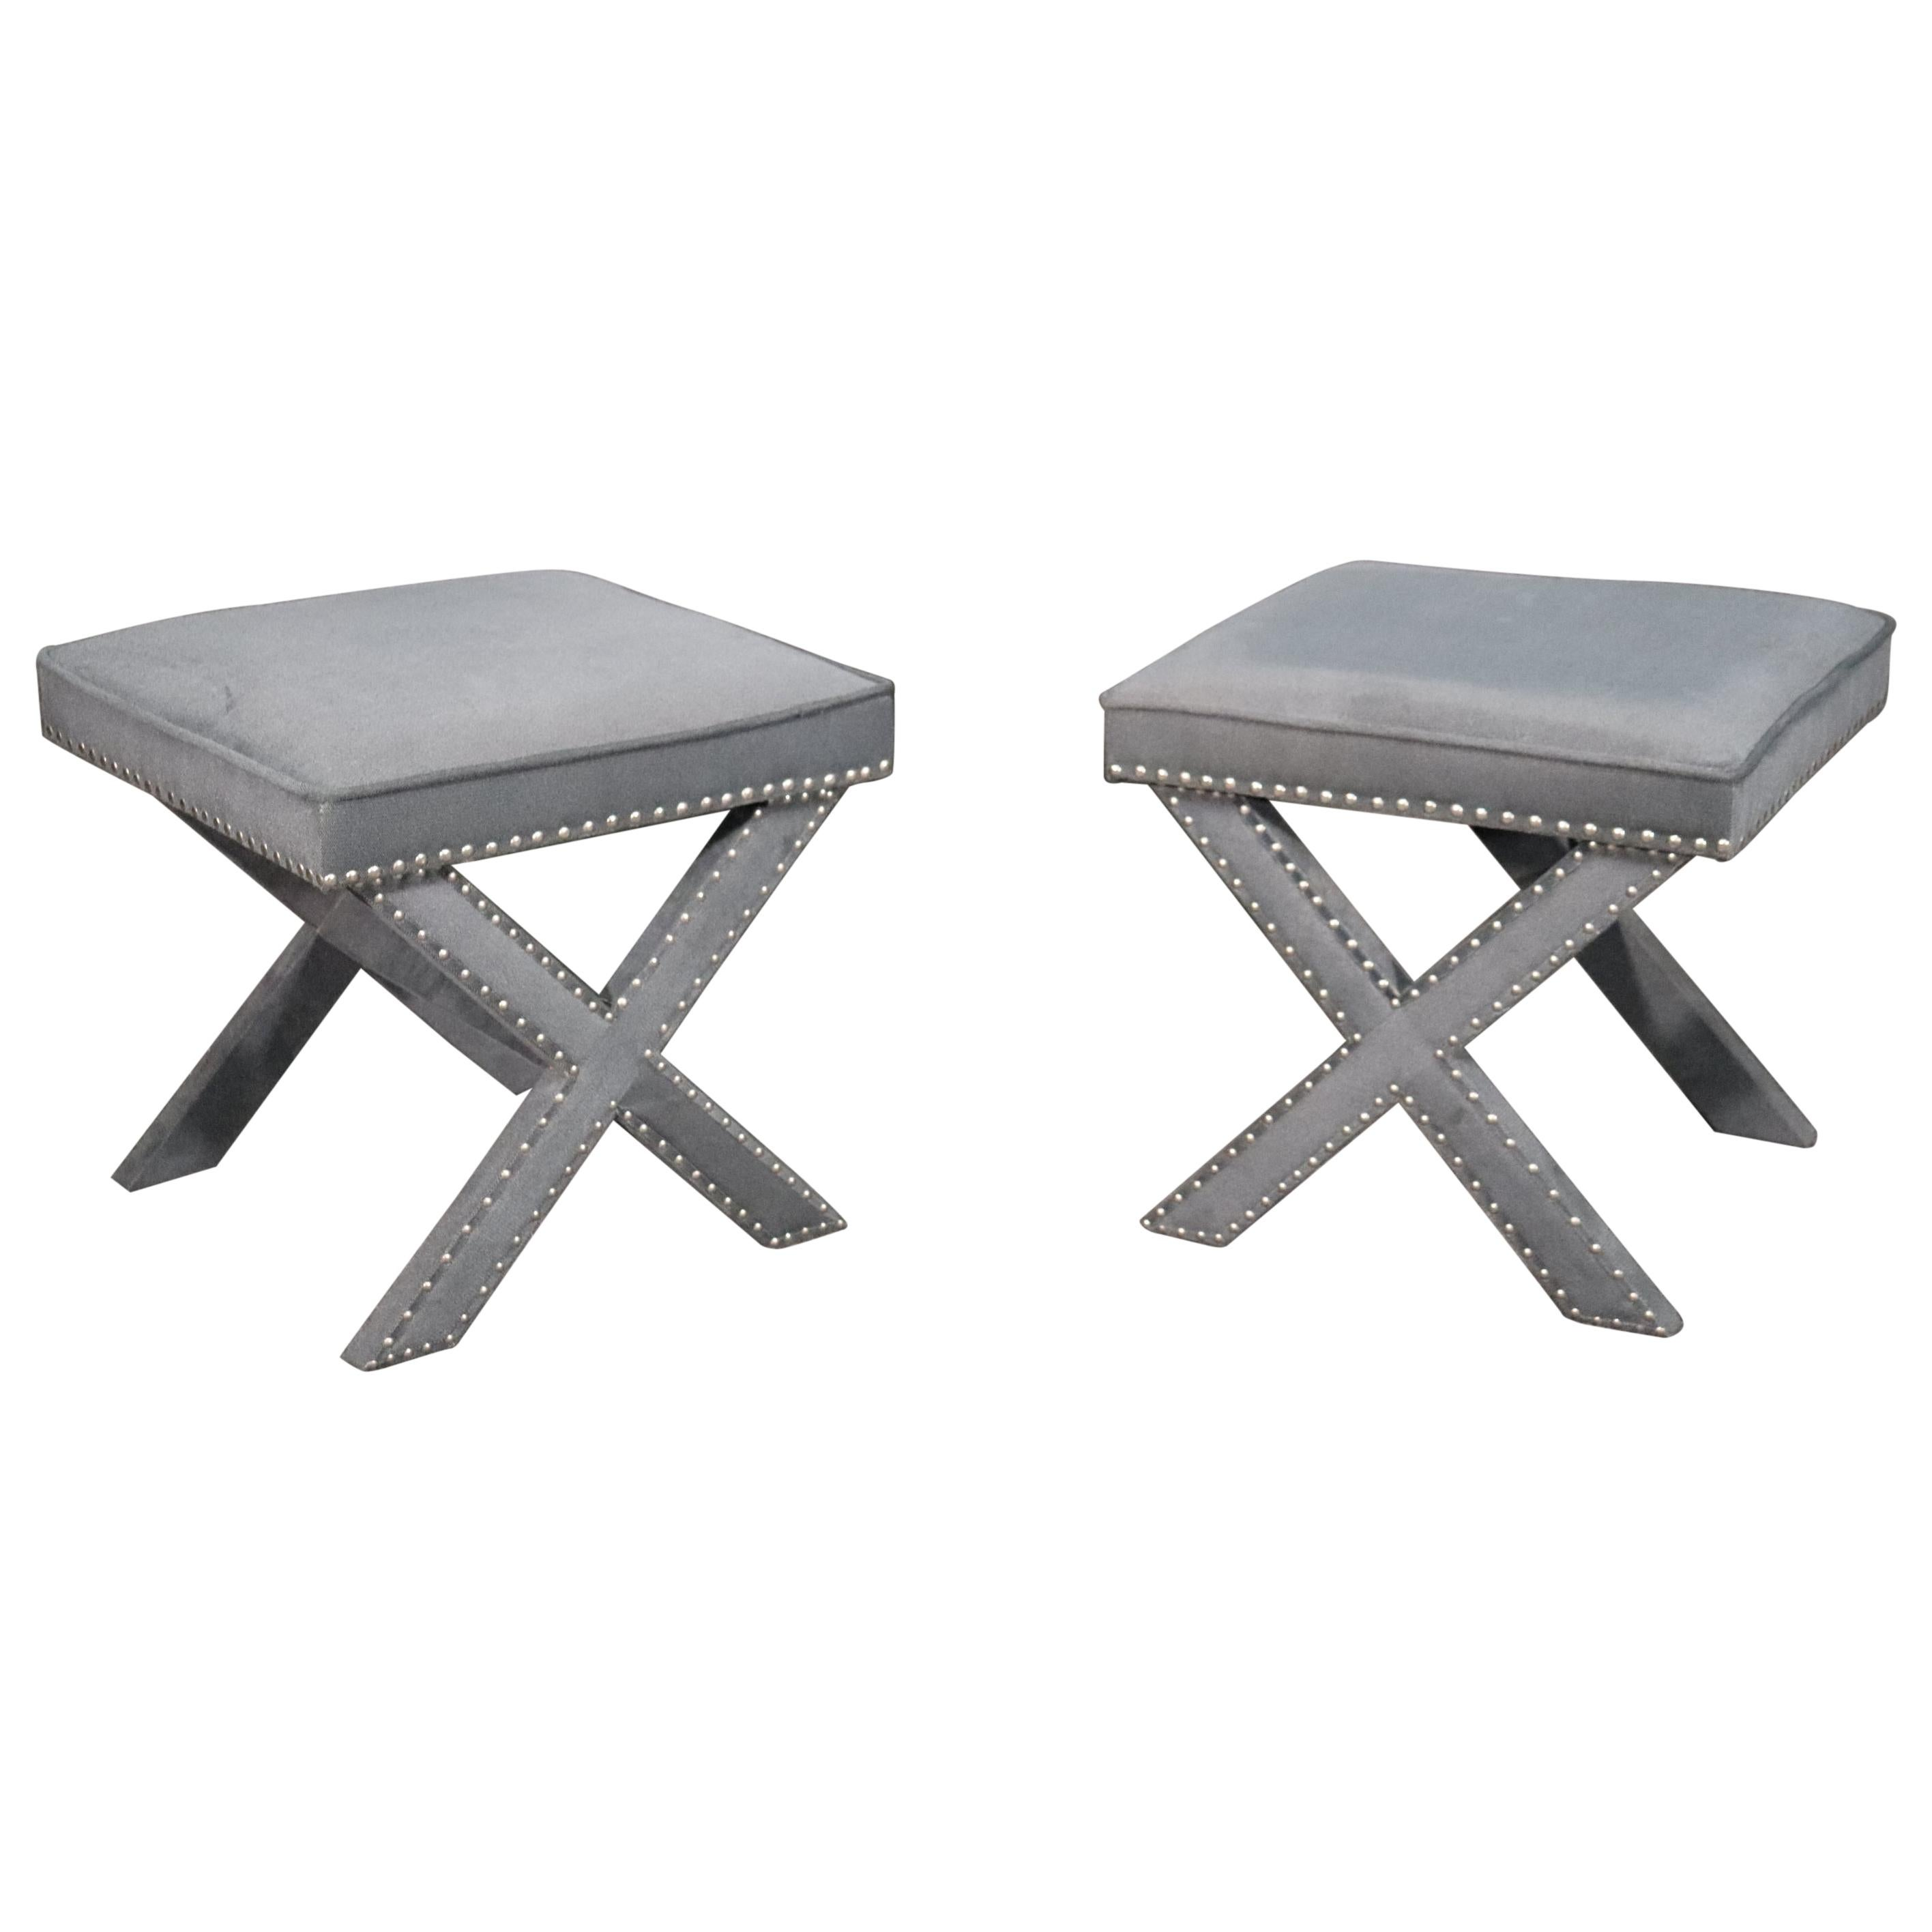 Pair of Classic Contemporary Dorothy Draper Style X Form Benches Stools